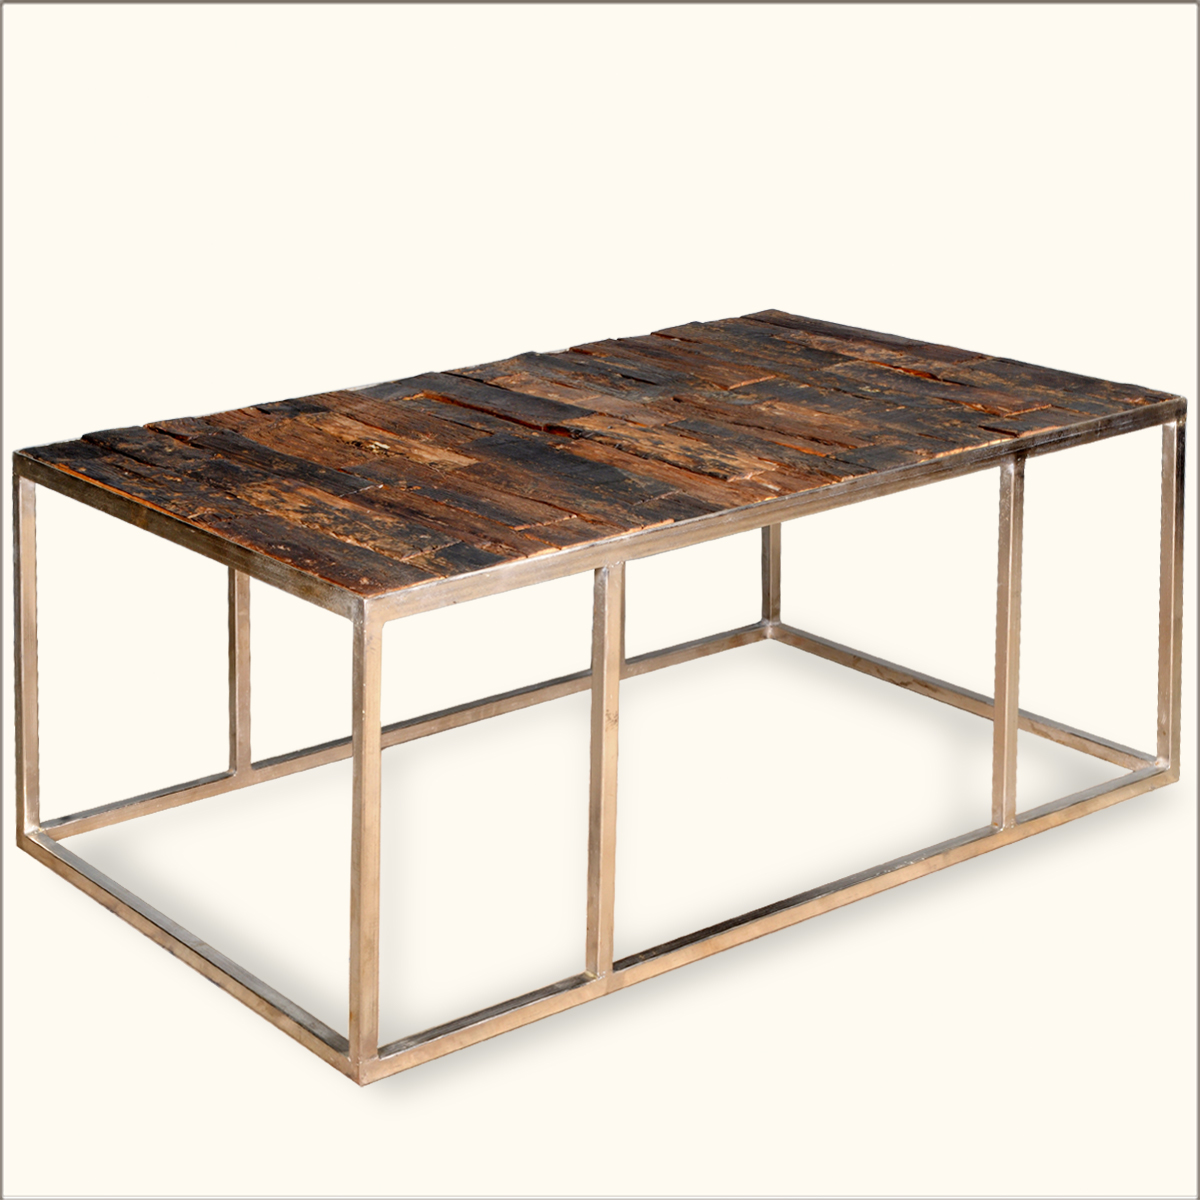 Reclaimed wood railroad ties iron rustic coffee table furniture ebay Rustic iron coffee table